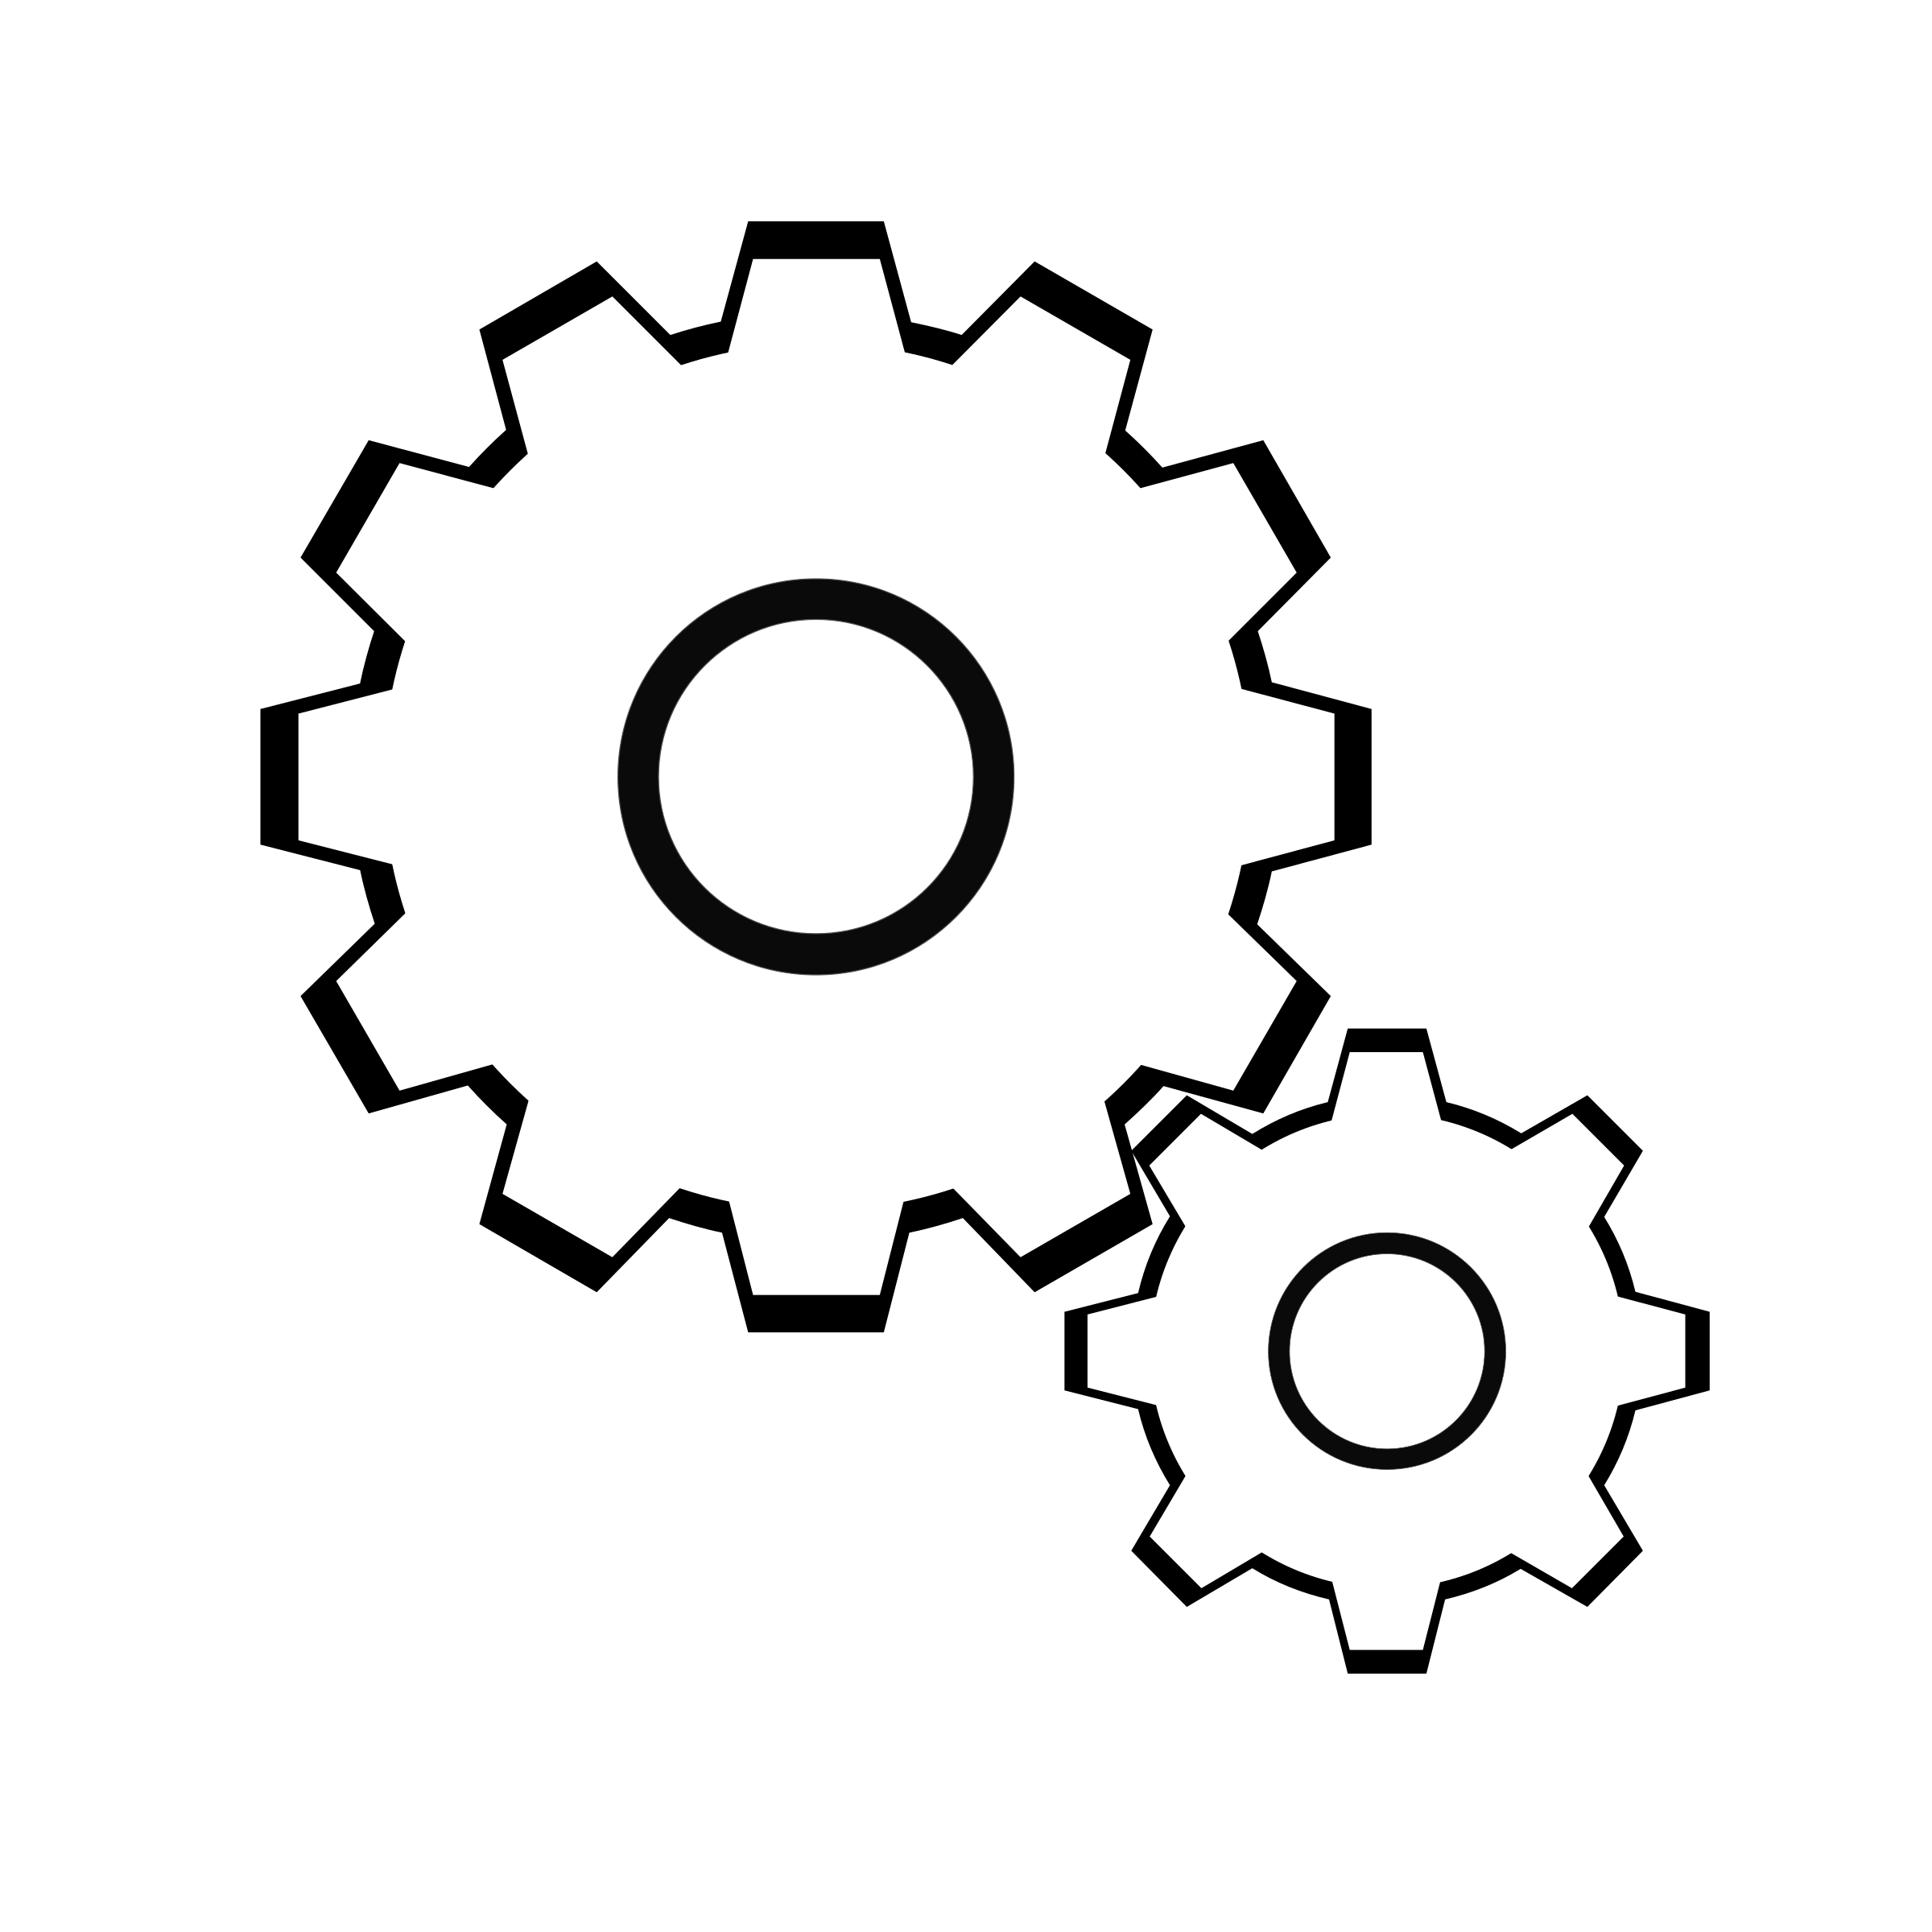 Simple Gears by ricardomaia